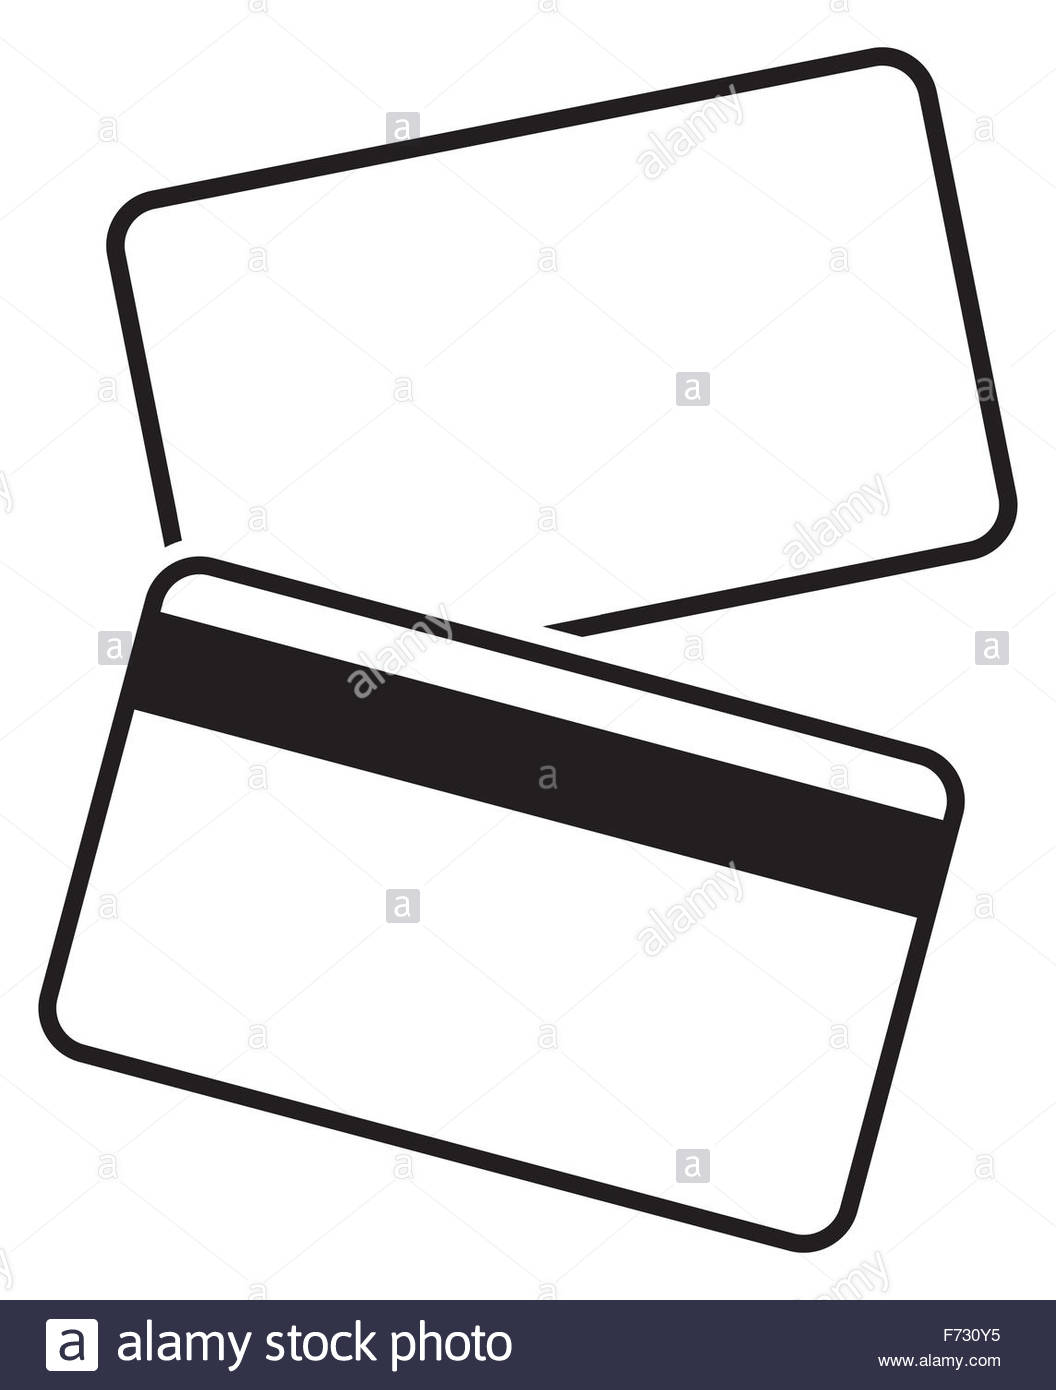 1056x1390 Frontnd Back Of Blank Debit Card Silhouette Isolated On